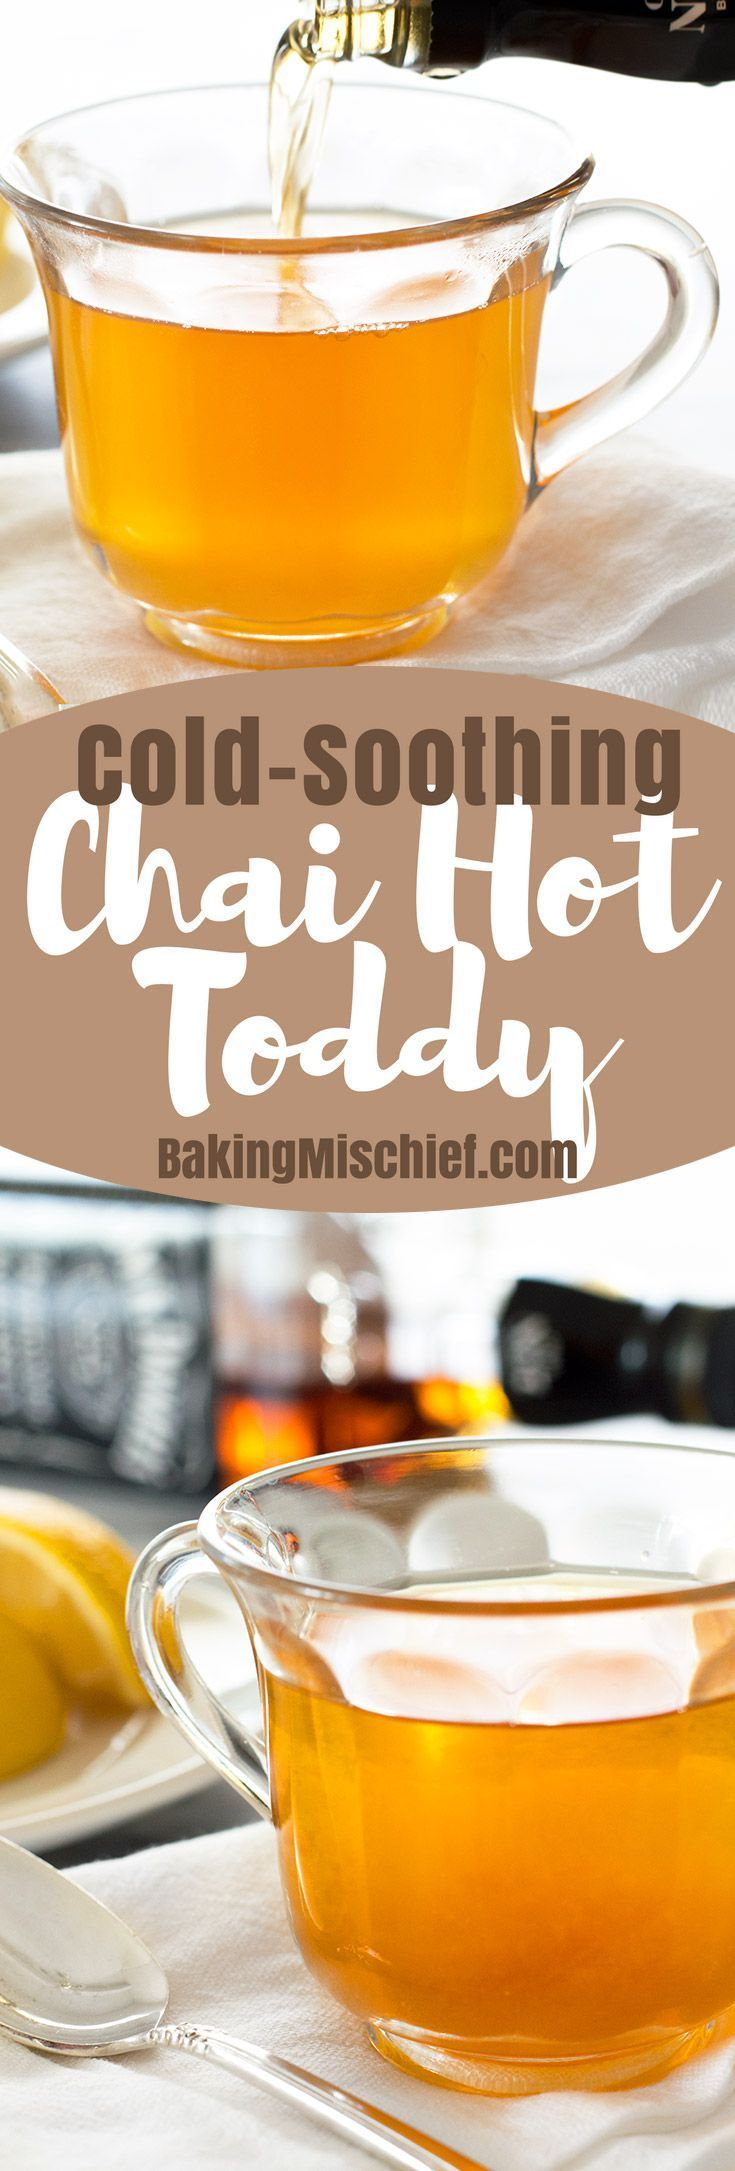 When you're sick, try a Chai Hot Toddy to ease some of your cold symptoms. The lemon and honey should help soothe your throat and loosen congestion, and if all else fails, it's hot, tastes good, and has alcohol. ;) From http://BakingMischief.com